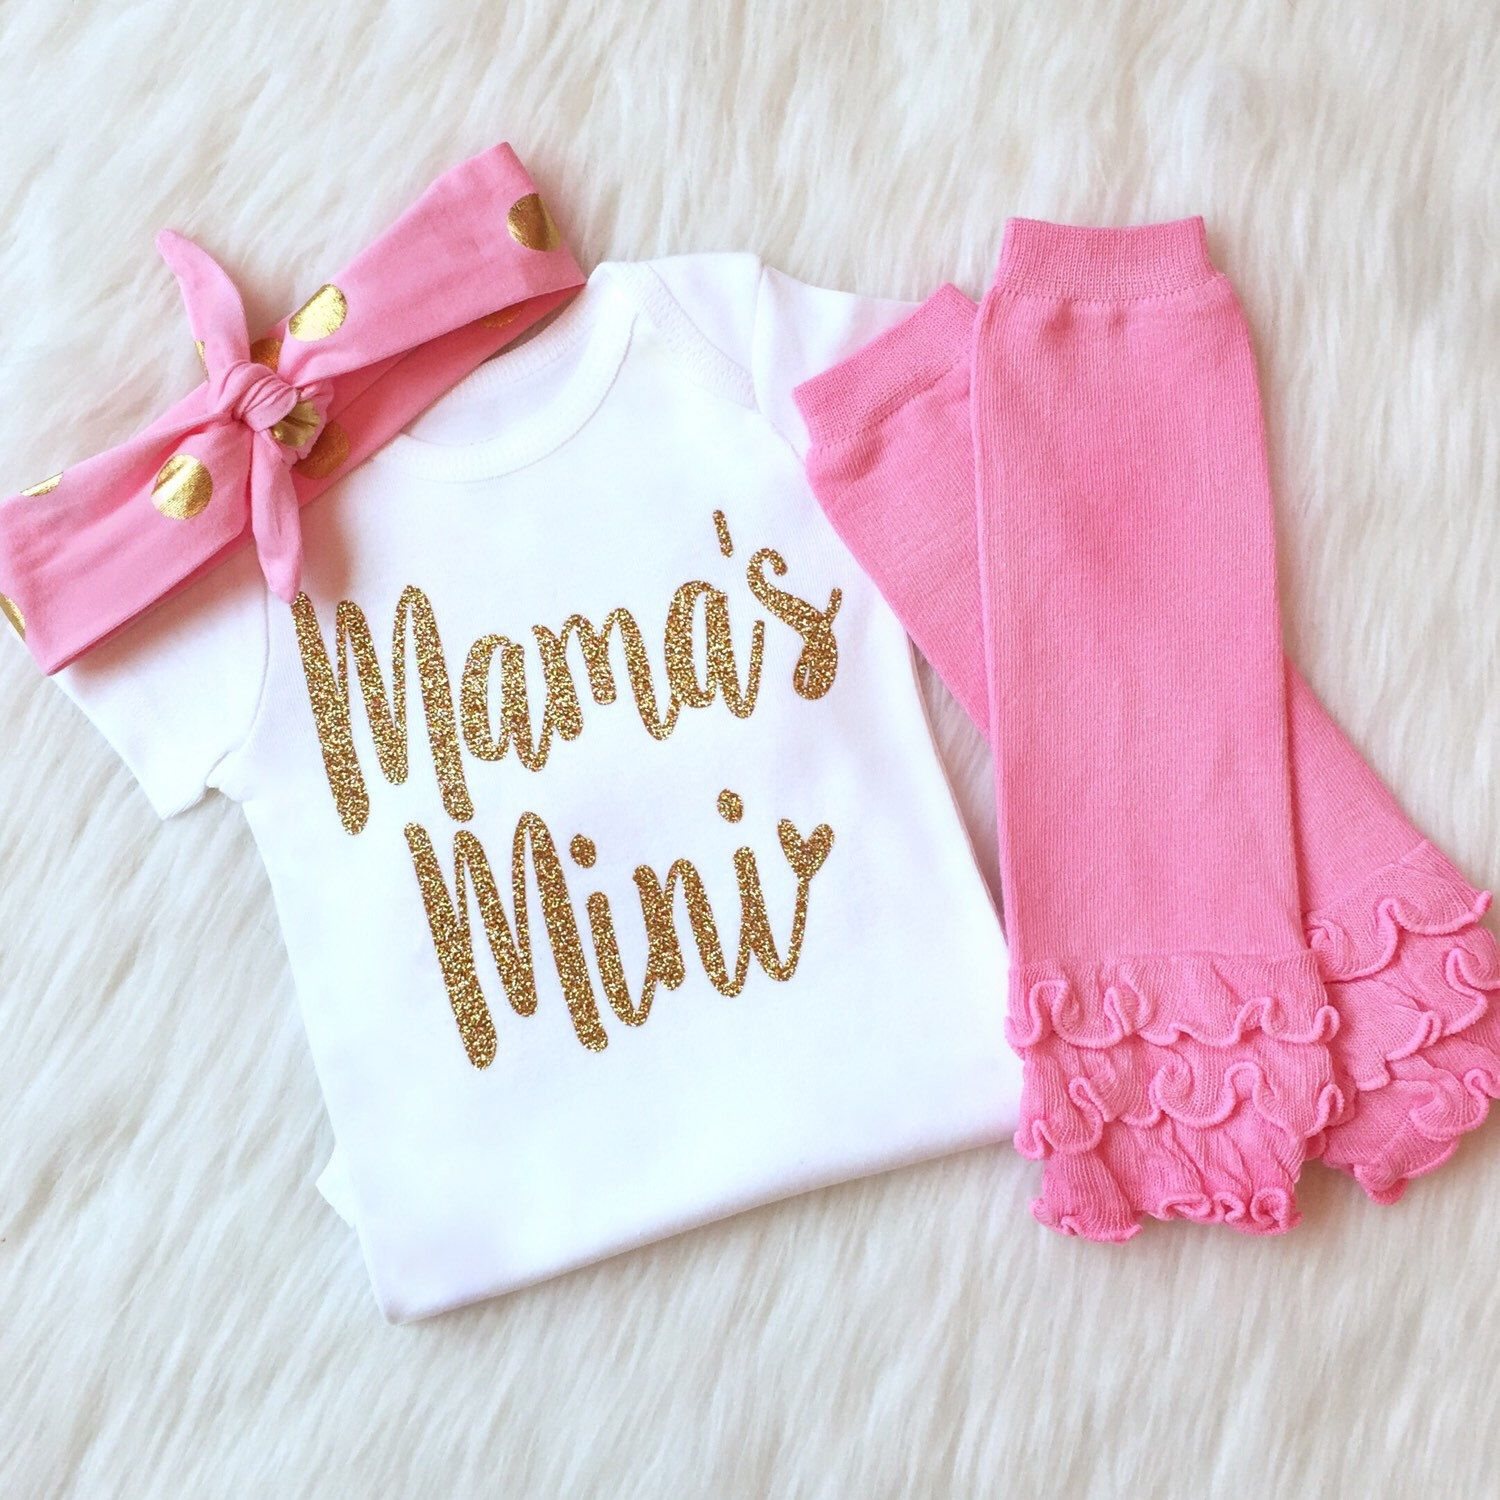 Photo of Mothers Day Gift Baby Girl Clothes Mommy and Me Mommys Girl Mommys Bestie Pregnancy Announcement Its a Girl Gender Reveal Newborn Girl Gift